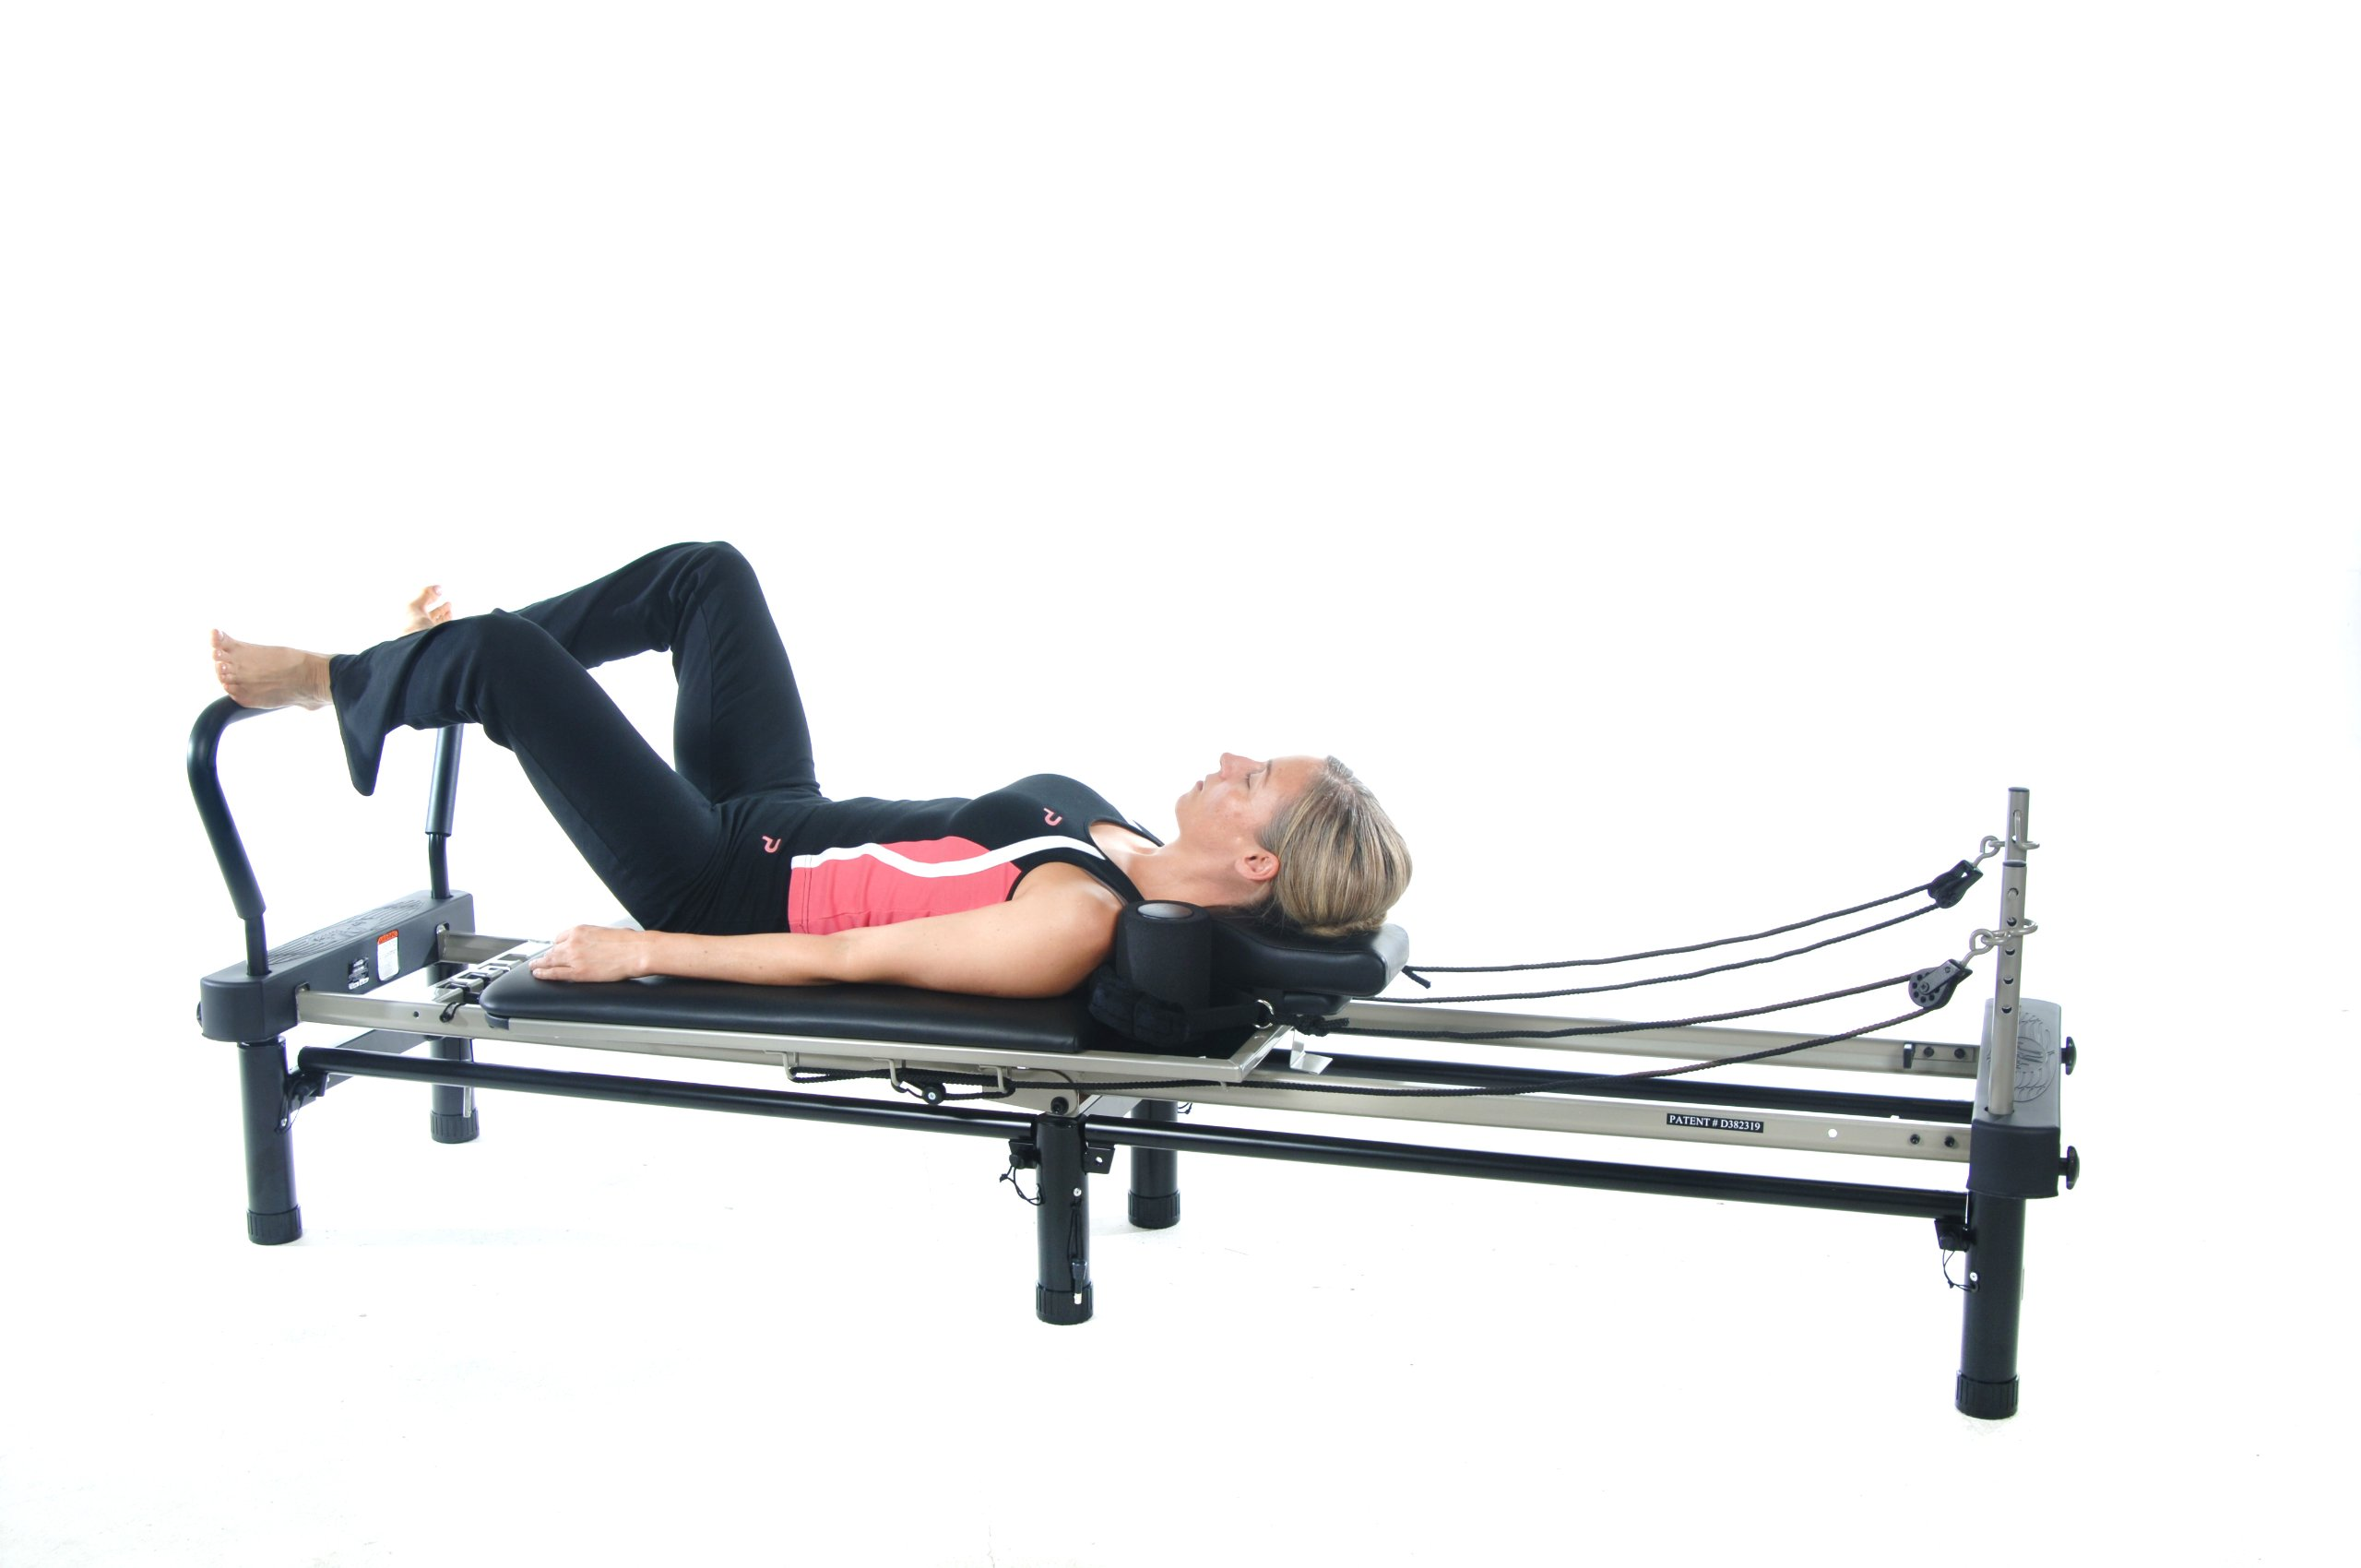 Stamina AeroPilates 700 Premier Reformer with Stand, Cardio Rebounder, Neck Pillow and DVDs by Stamina (Image #10)